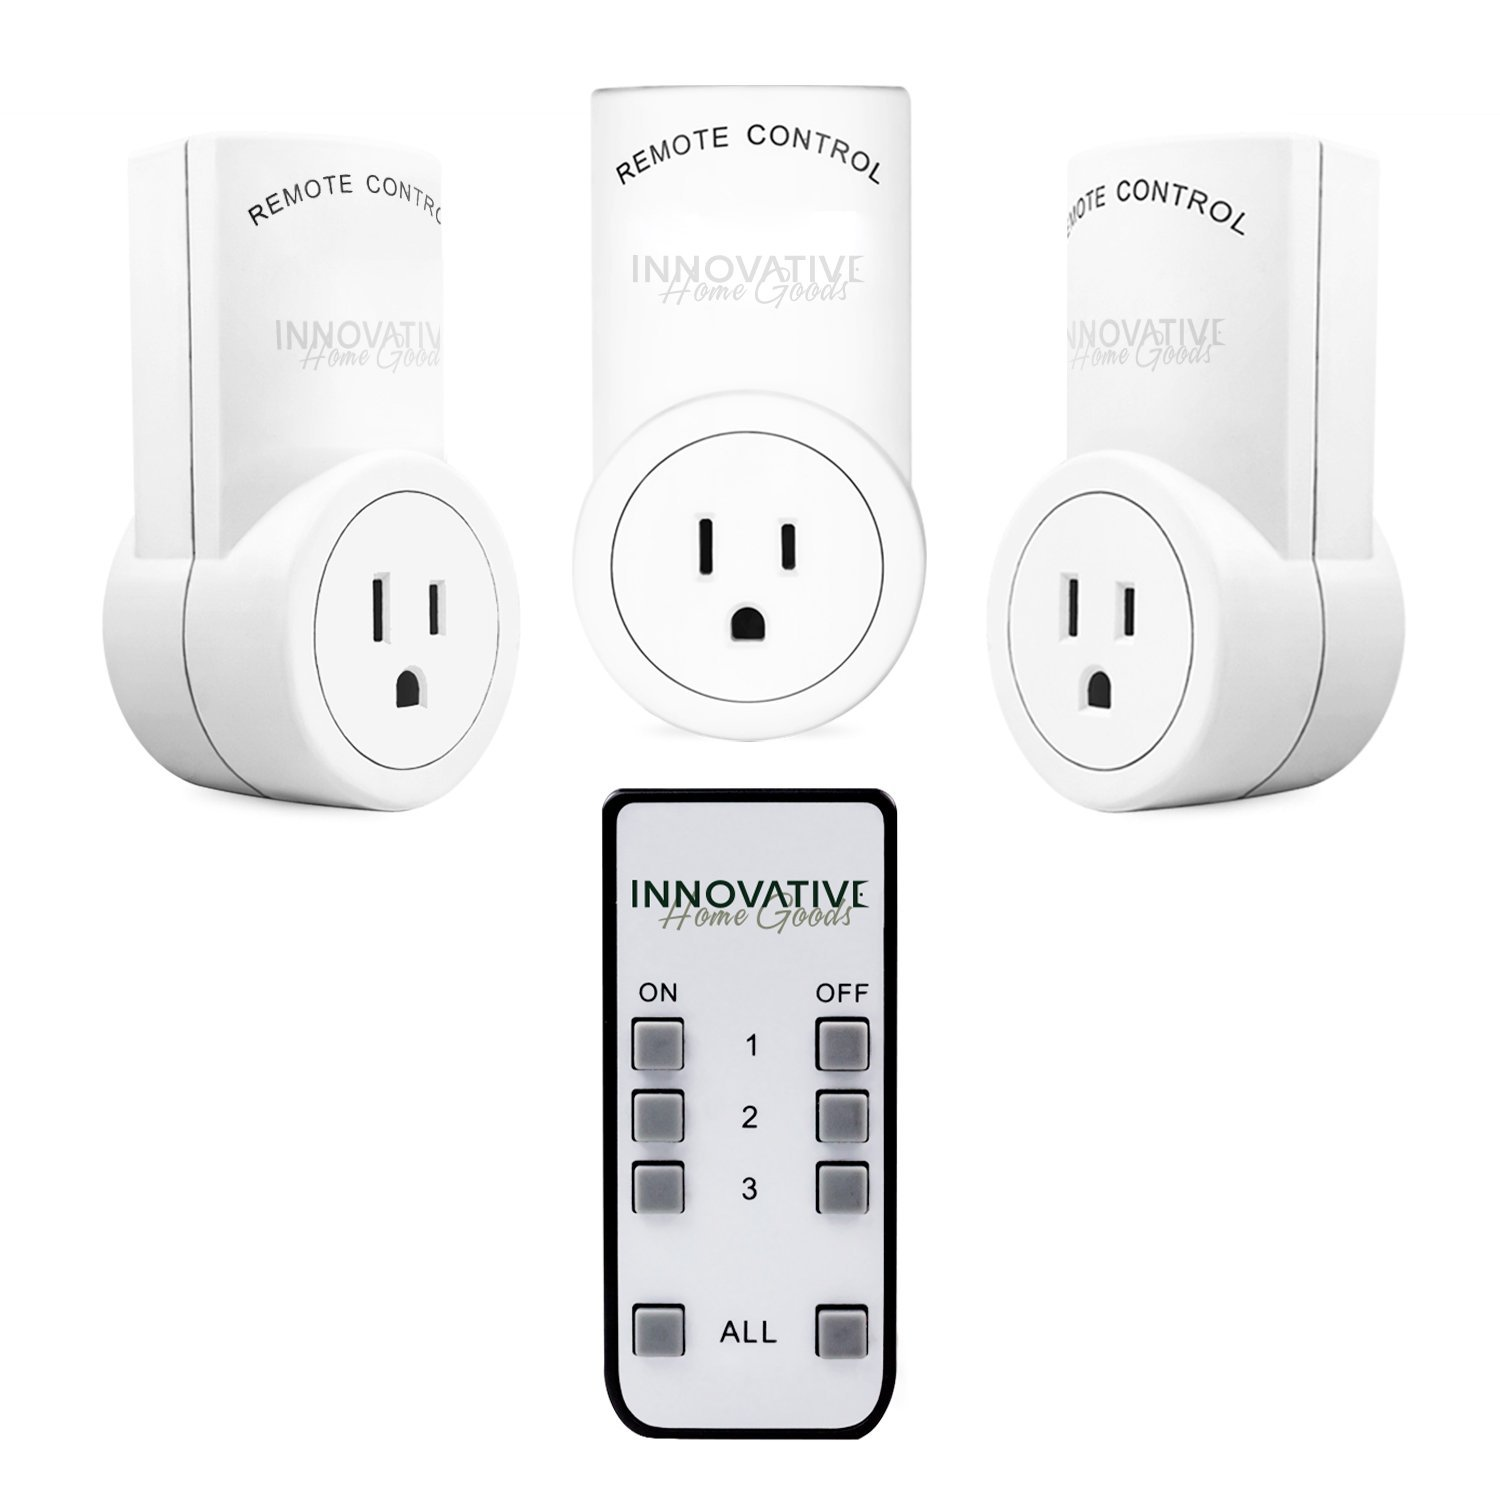 Smart Home Outlets, Switches & Plugs | Smart Home Devices on plug in outlet adapter, electrical outlet switch, power outlet switch, electric outlet switch, 220 outlet switch, outlet with switch, plug into outlet, plug in electrical outlet, add on outlet switch, plug in wall outlet, wireless outlet switch, 3 prong outlet switch, 110v outlet switch, plug wiring diagram, plug socket, plug with remote, triple outlet switch,